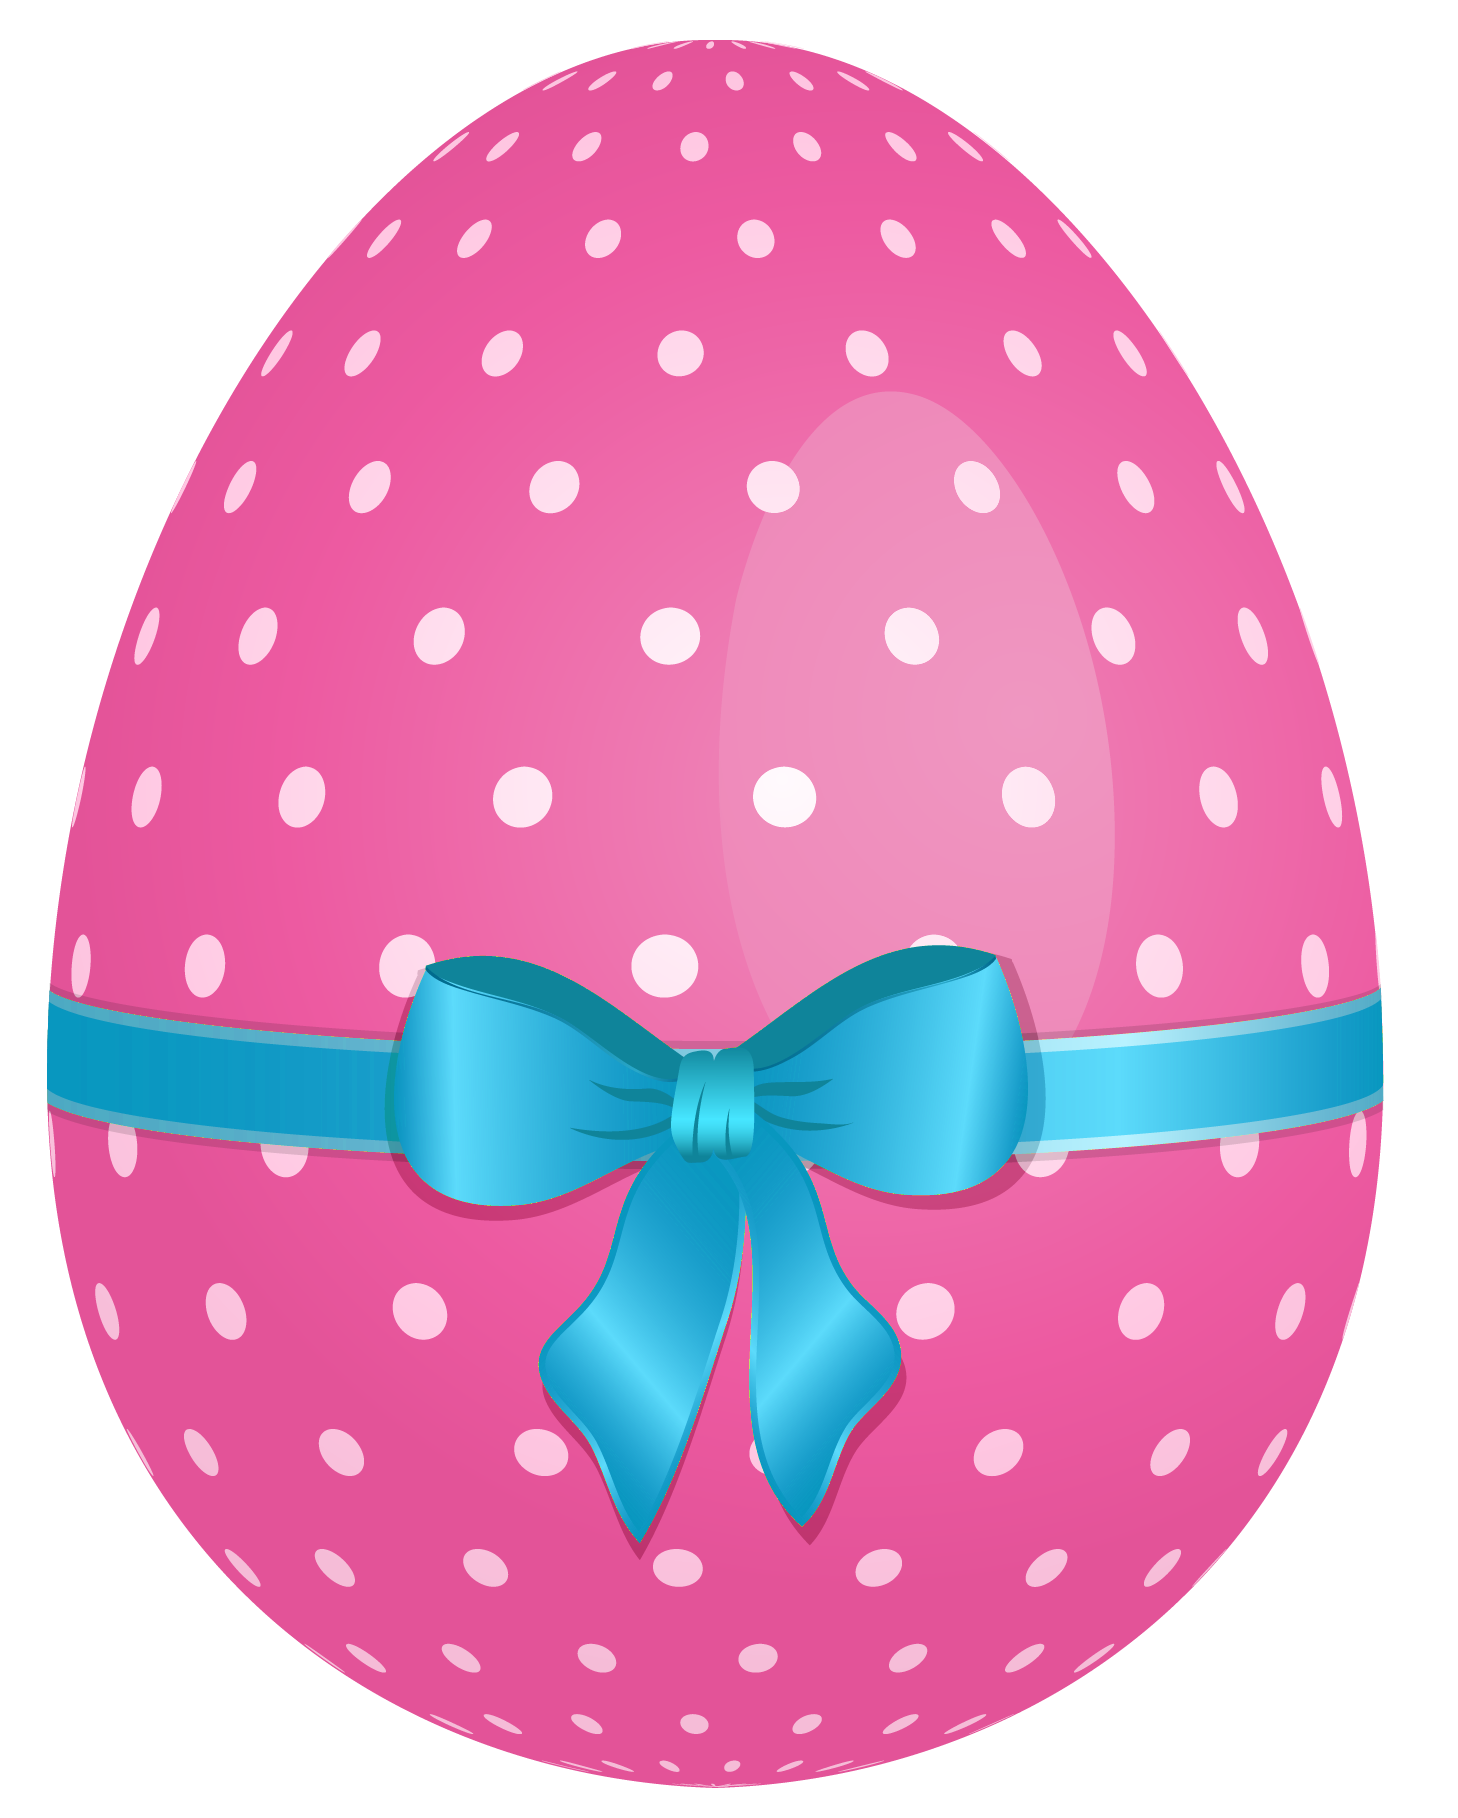 Egg clipart 3 egg. The easter bunny has